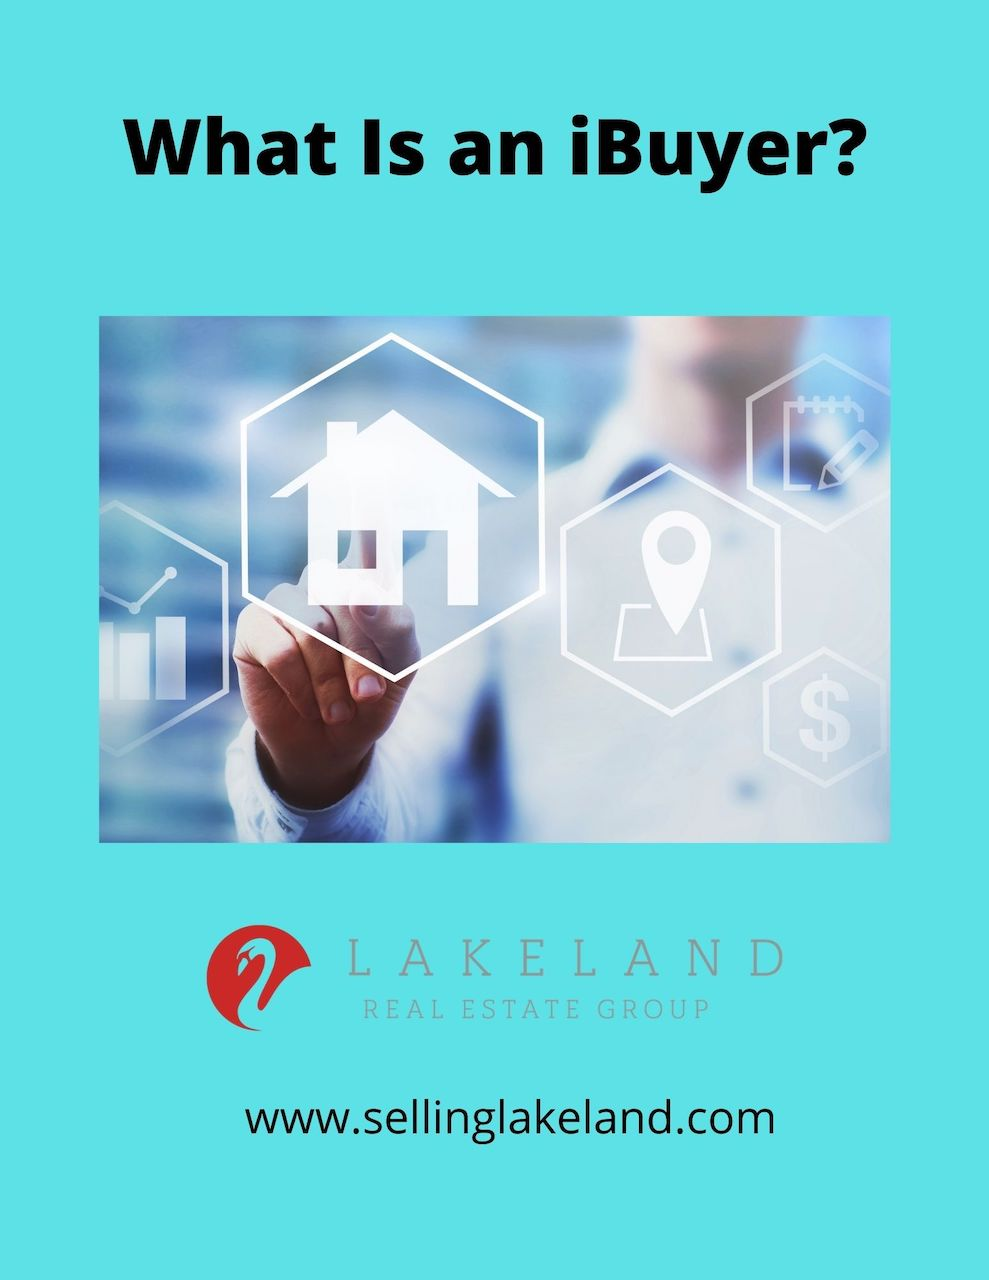 What is an iBuyer?